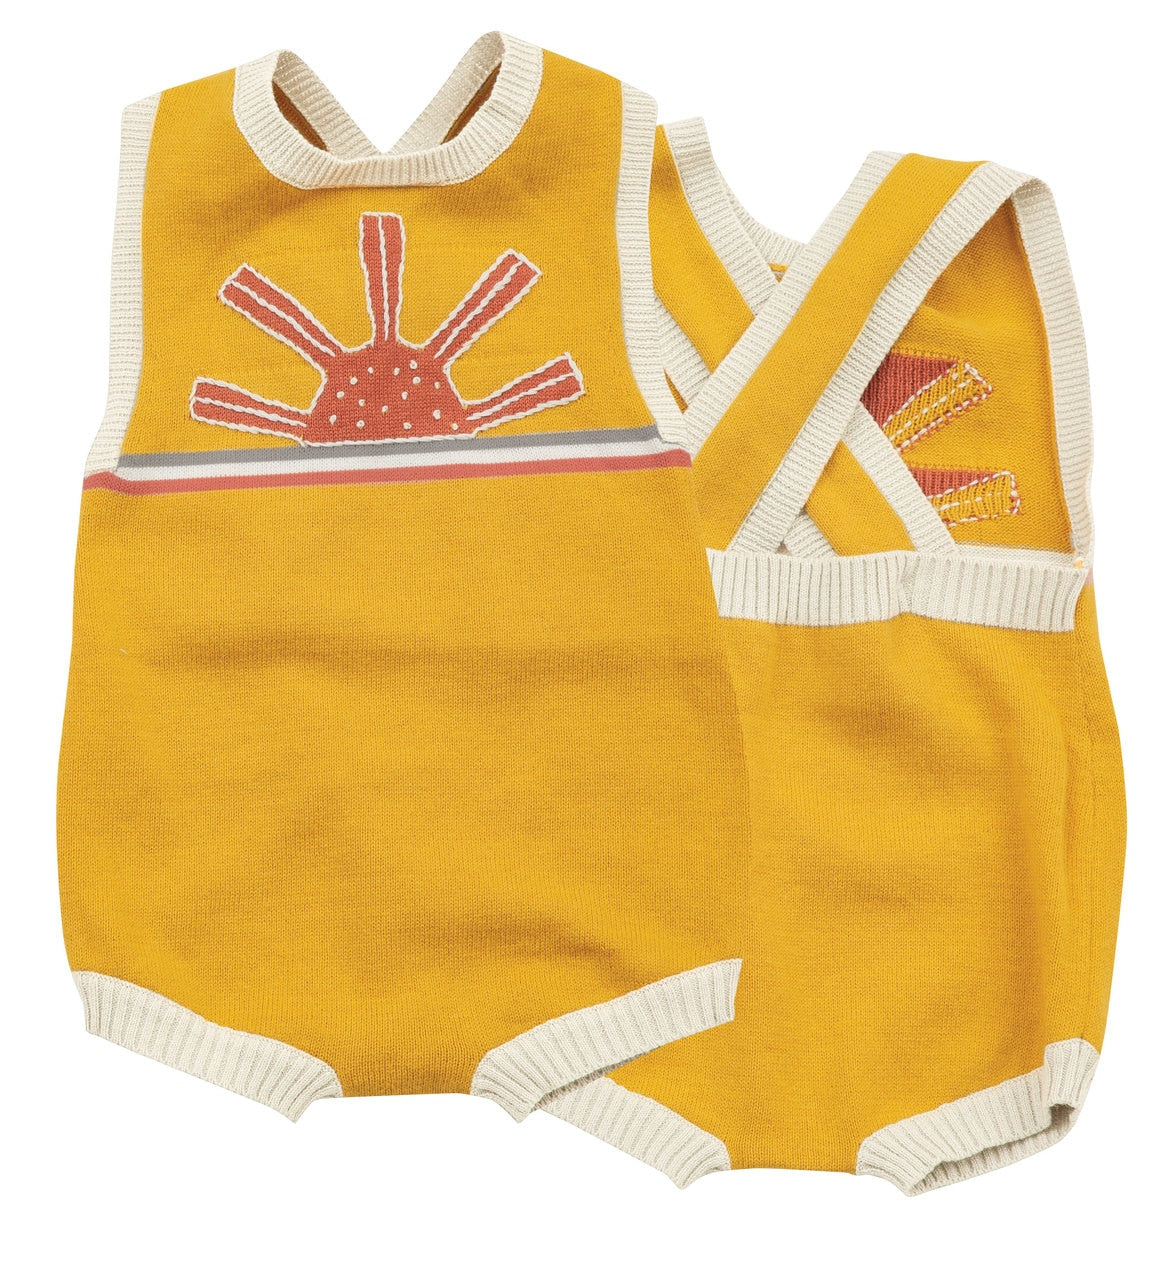 Knit Sunsuit with Vintage-Style Sun Intarsia